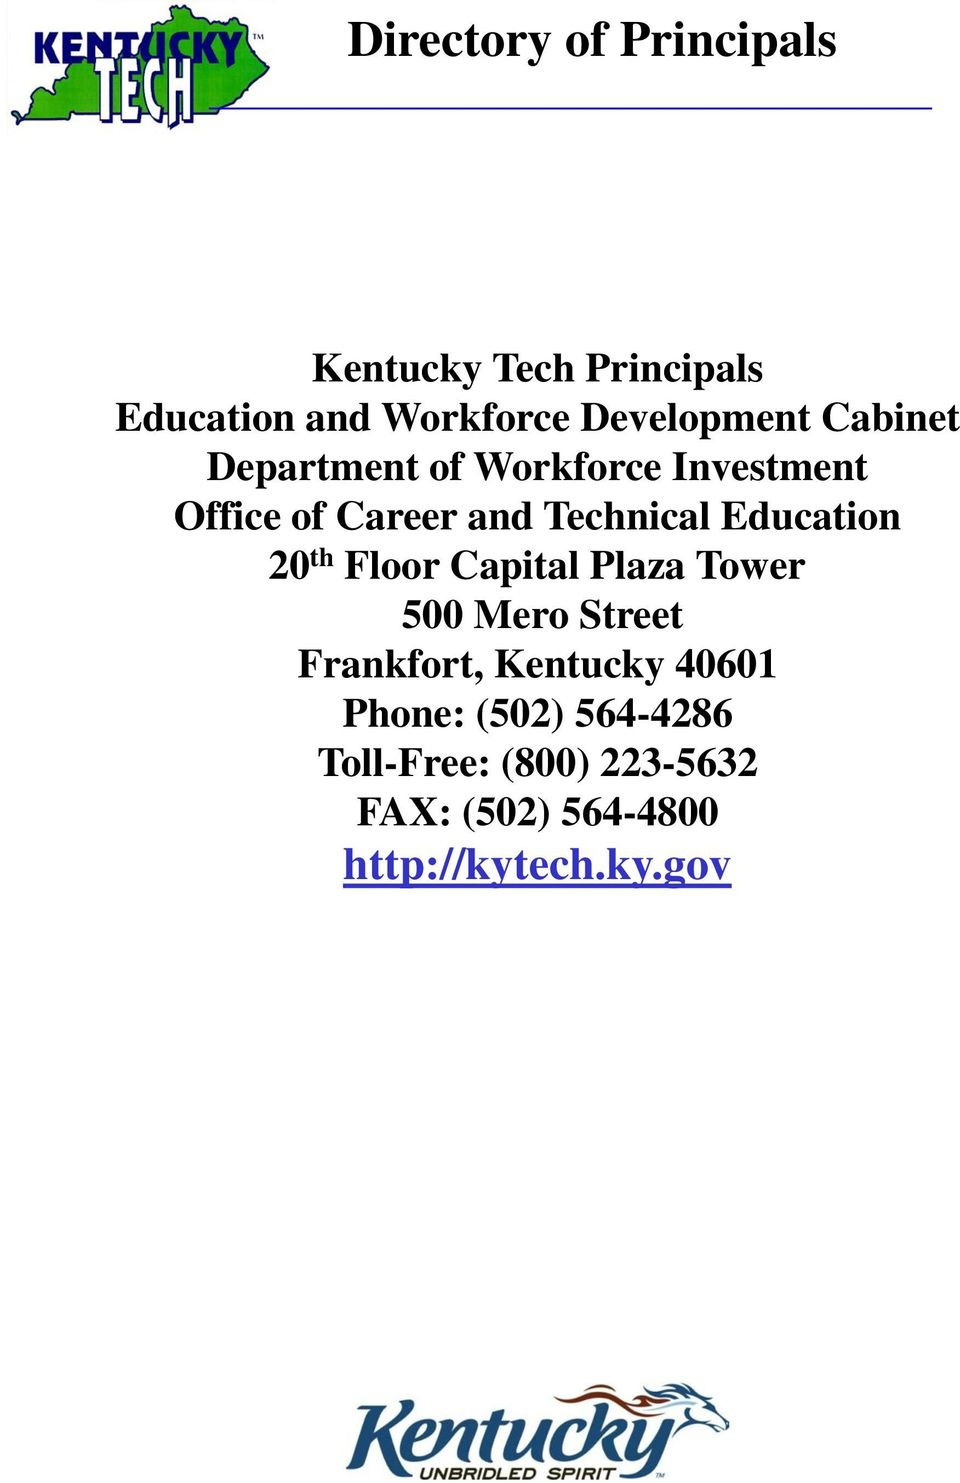 20 th Floor Capital Plaza Tower 500 Mero Street Frankfort, Kentucky 40601